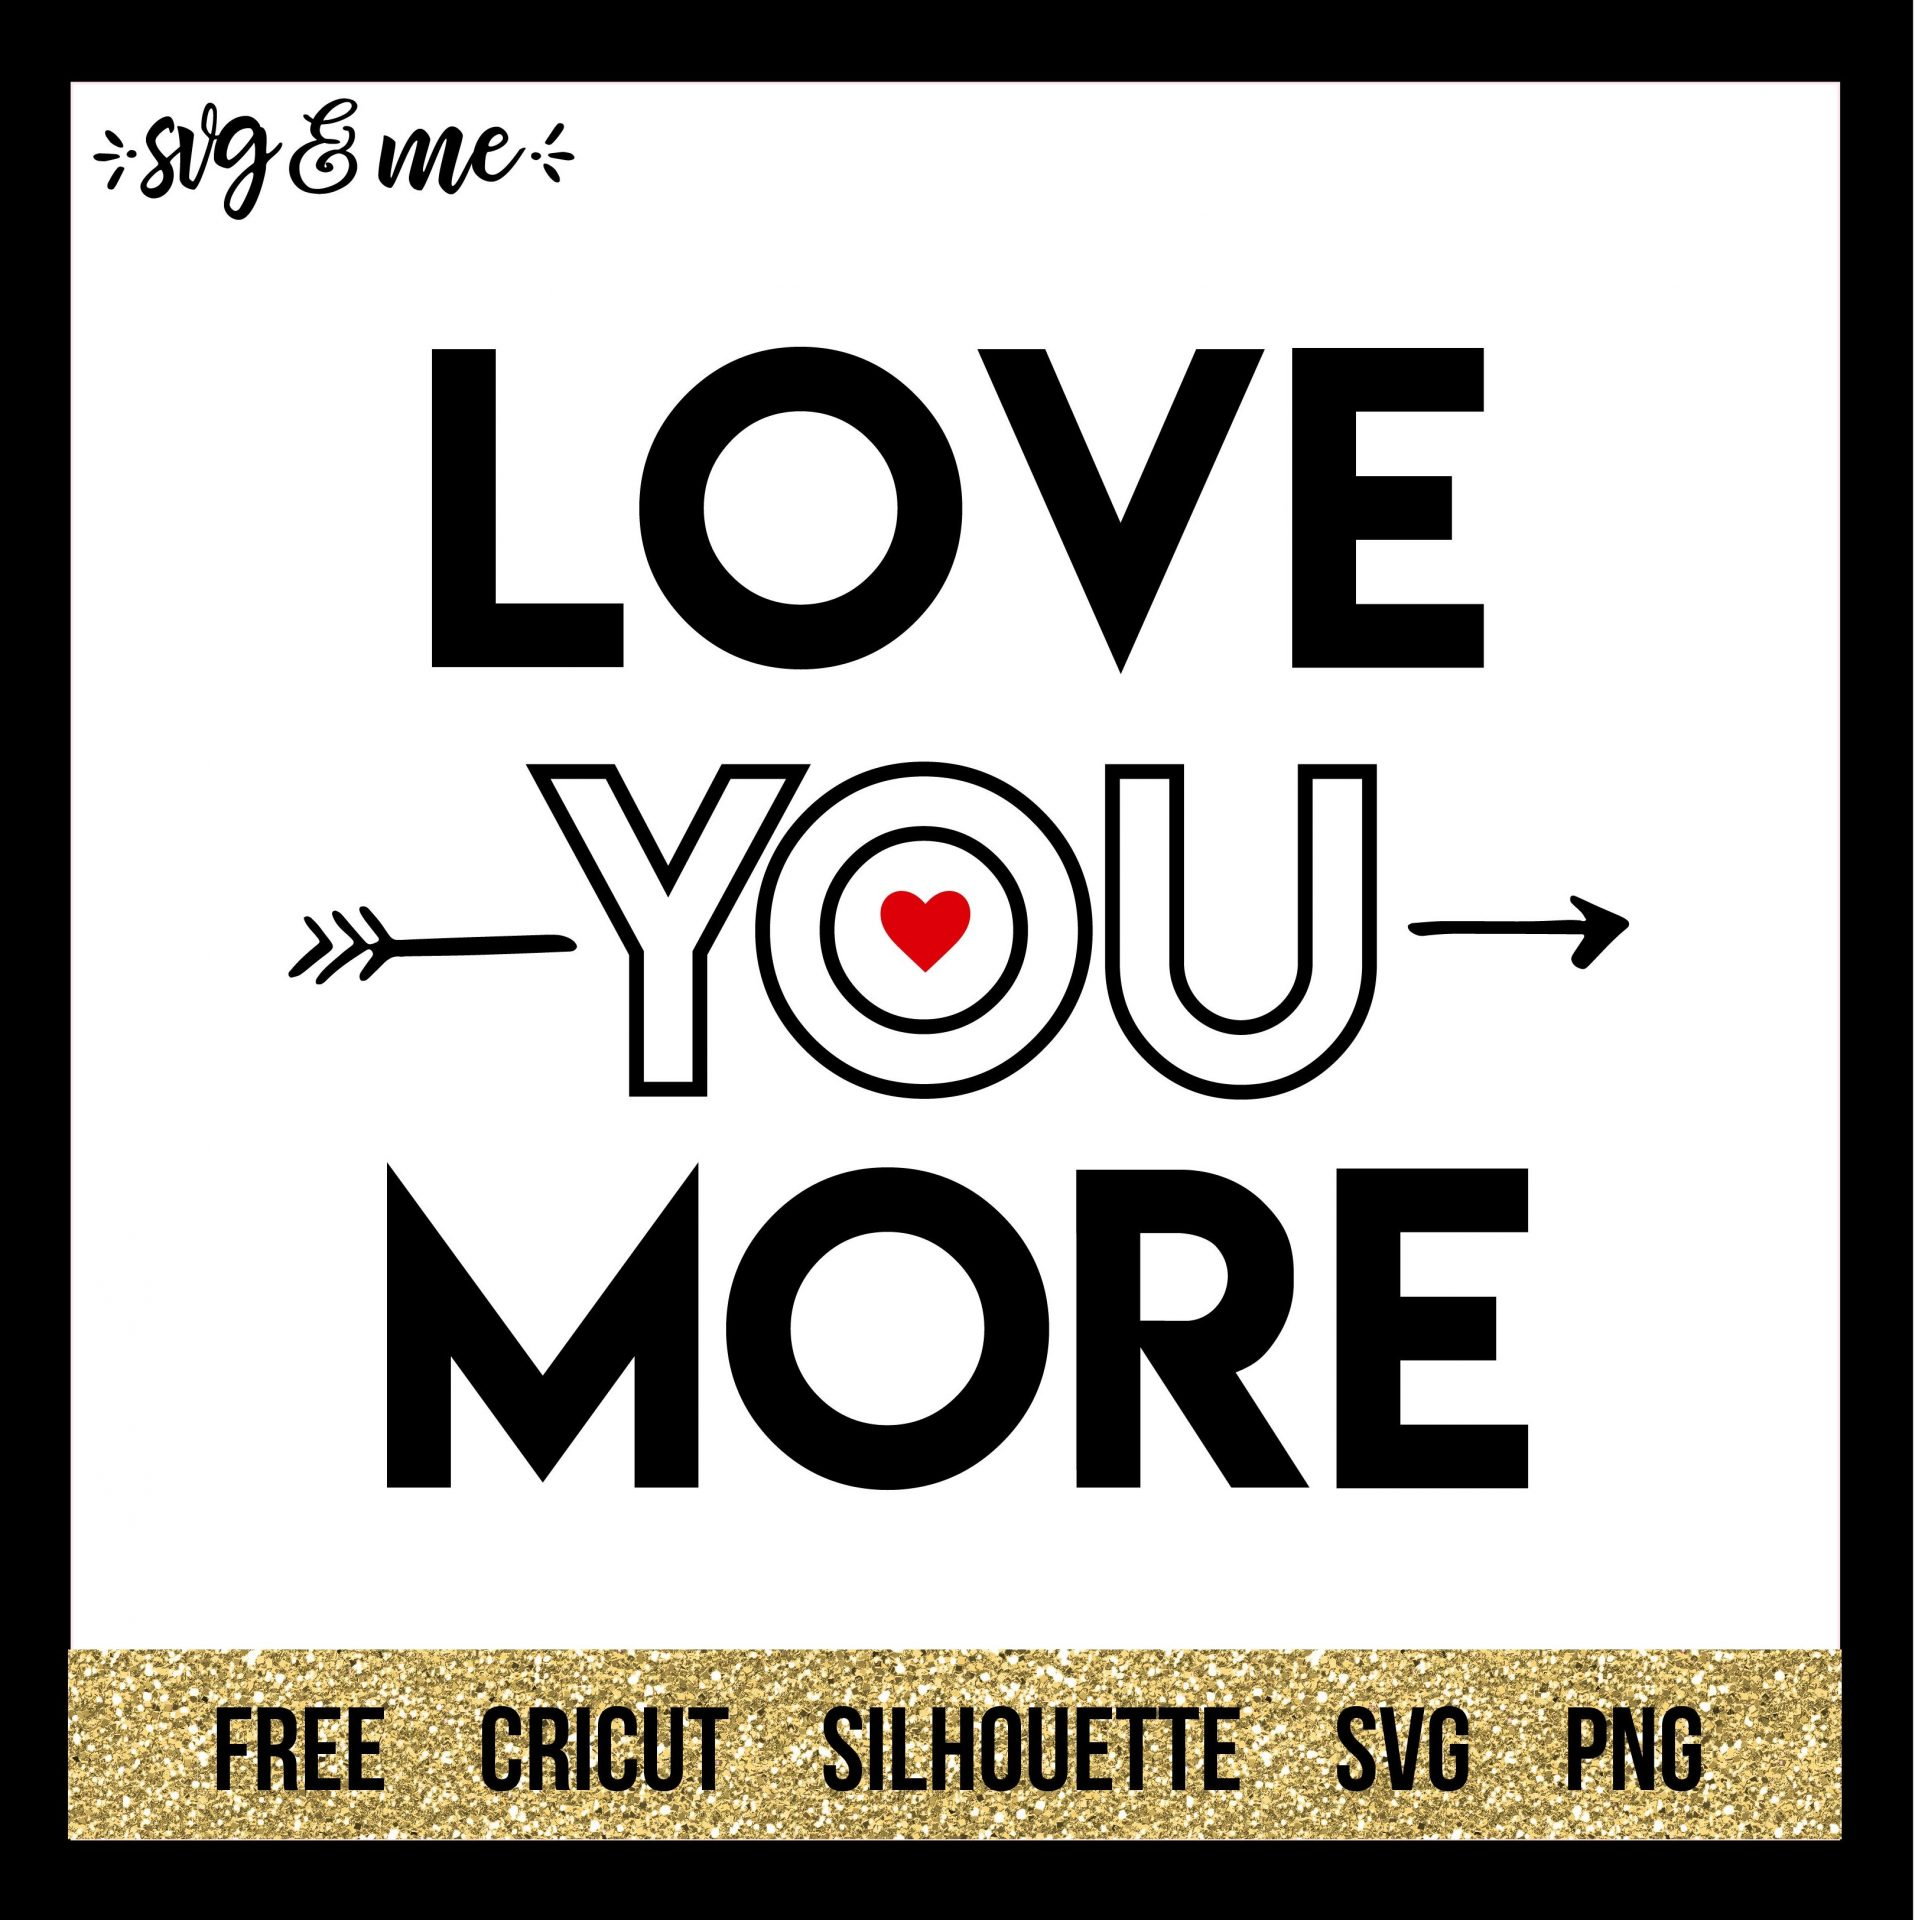 FREE SVG CUT FILE for Cricut, Silhouette and more - Love You More